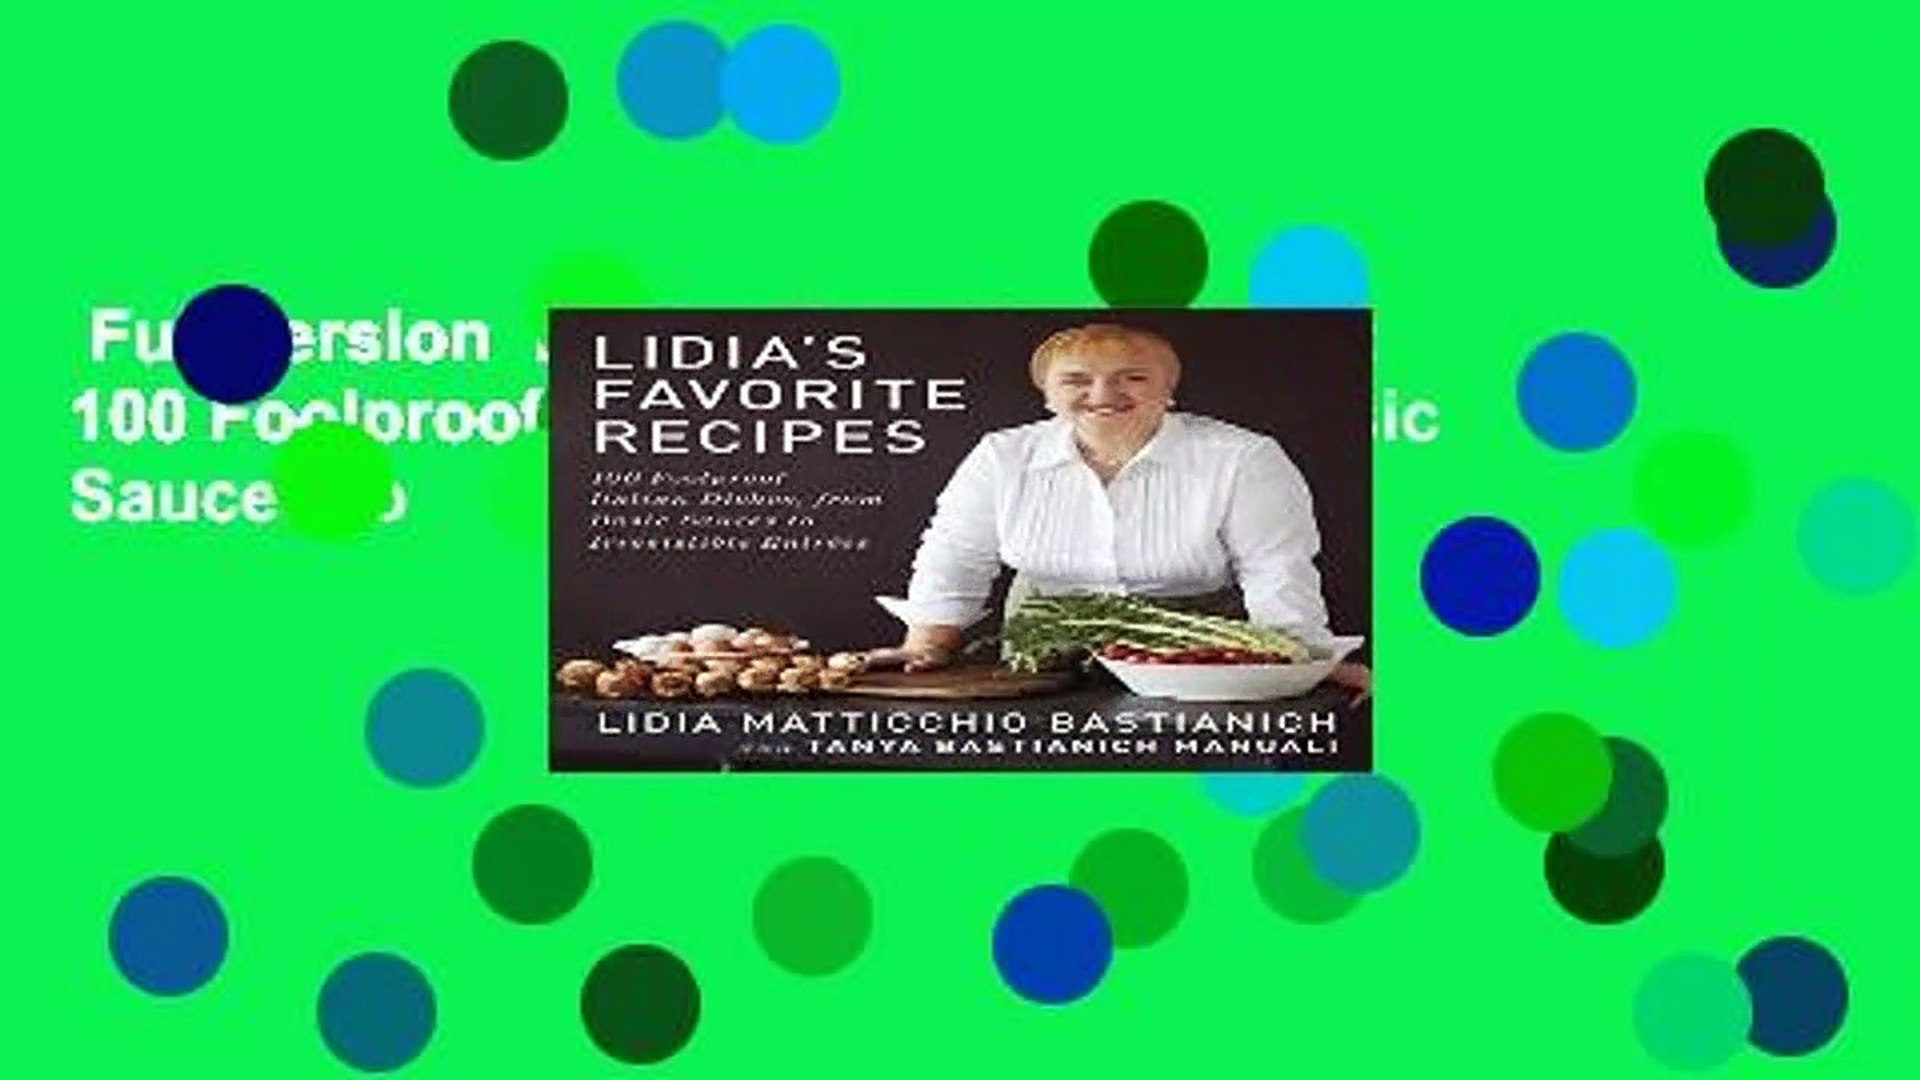 Full version  Lidia s Favorite Recipes: 100 Foolproof Italian Dishes, from Basic Sauces to